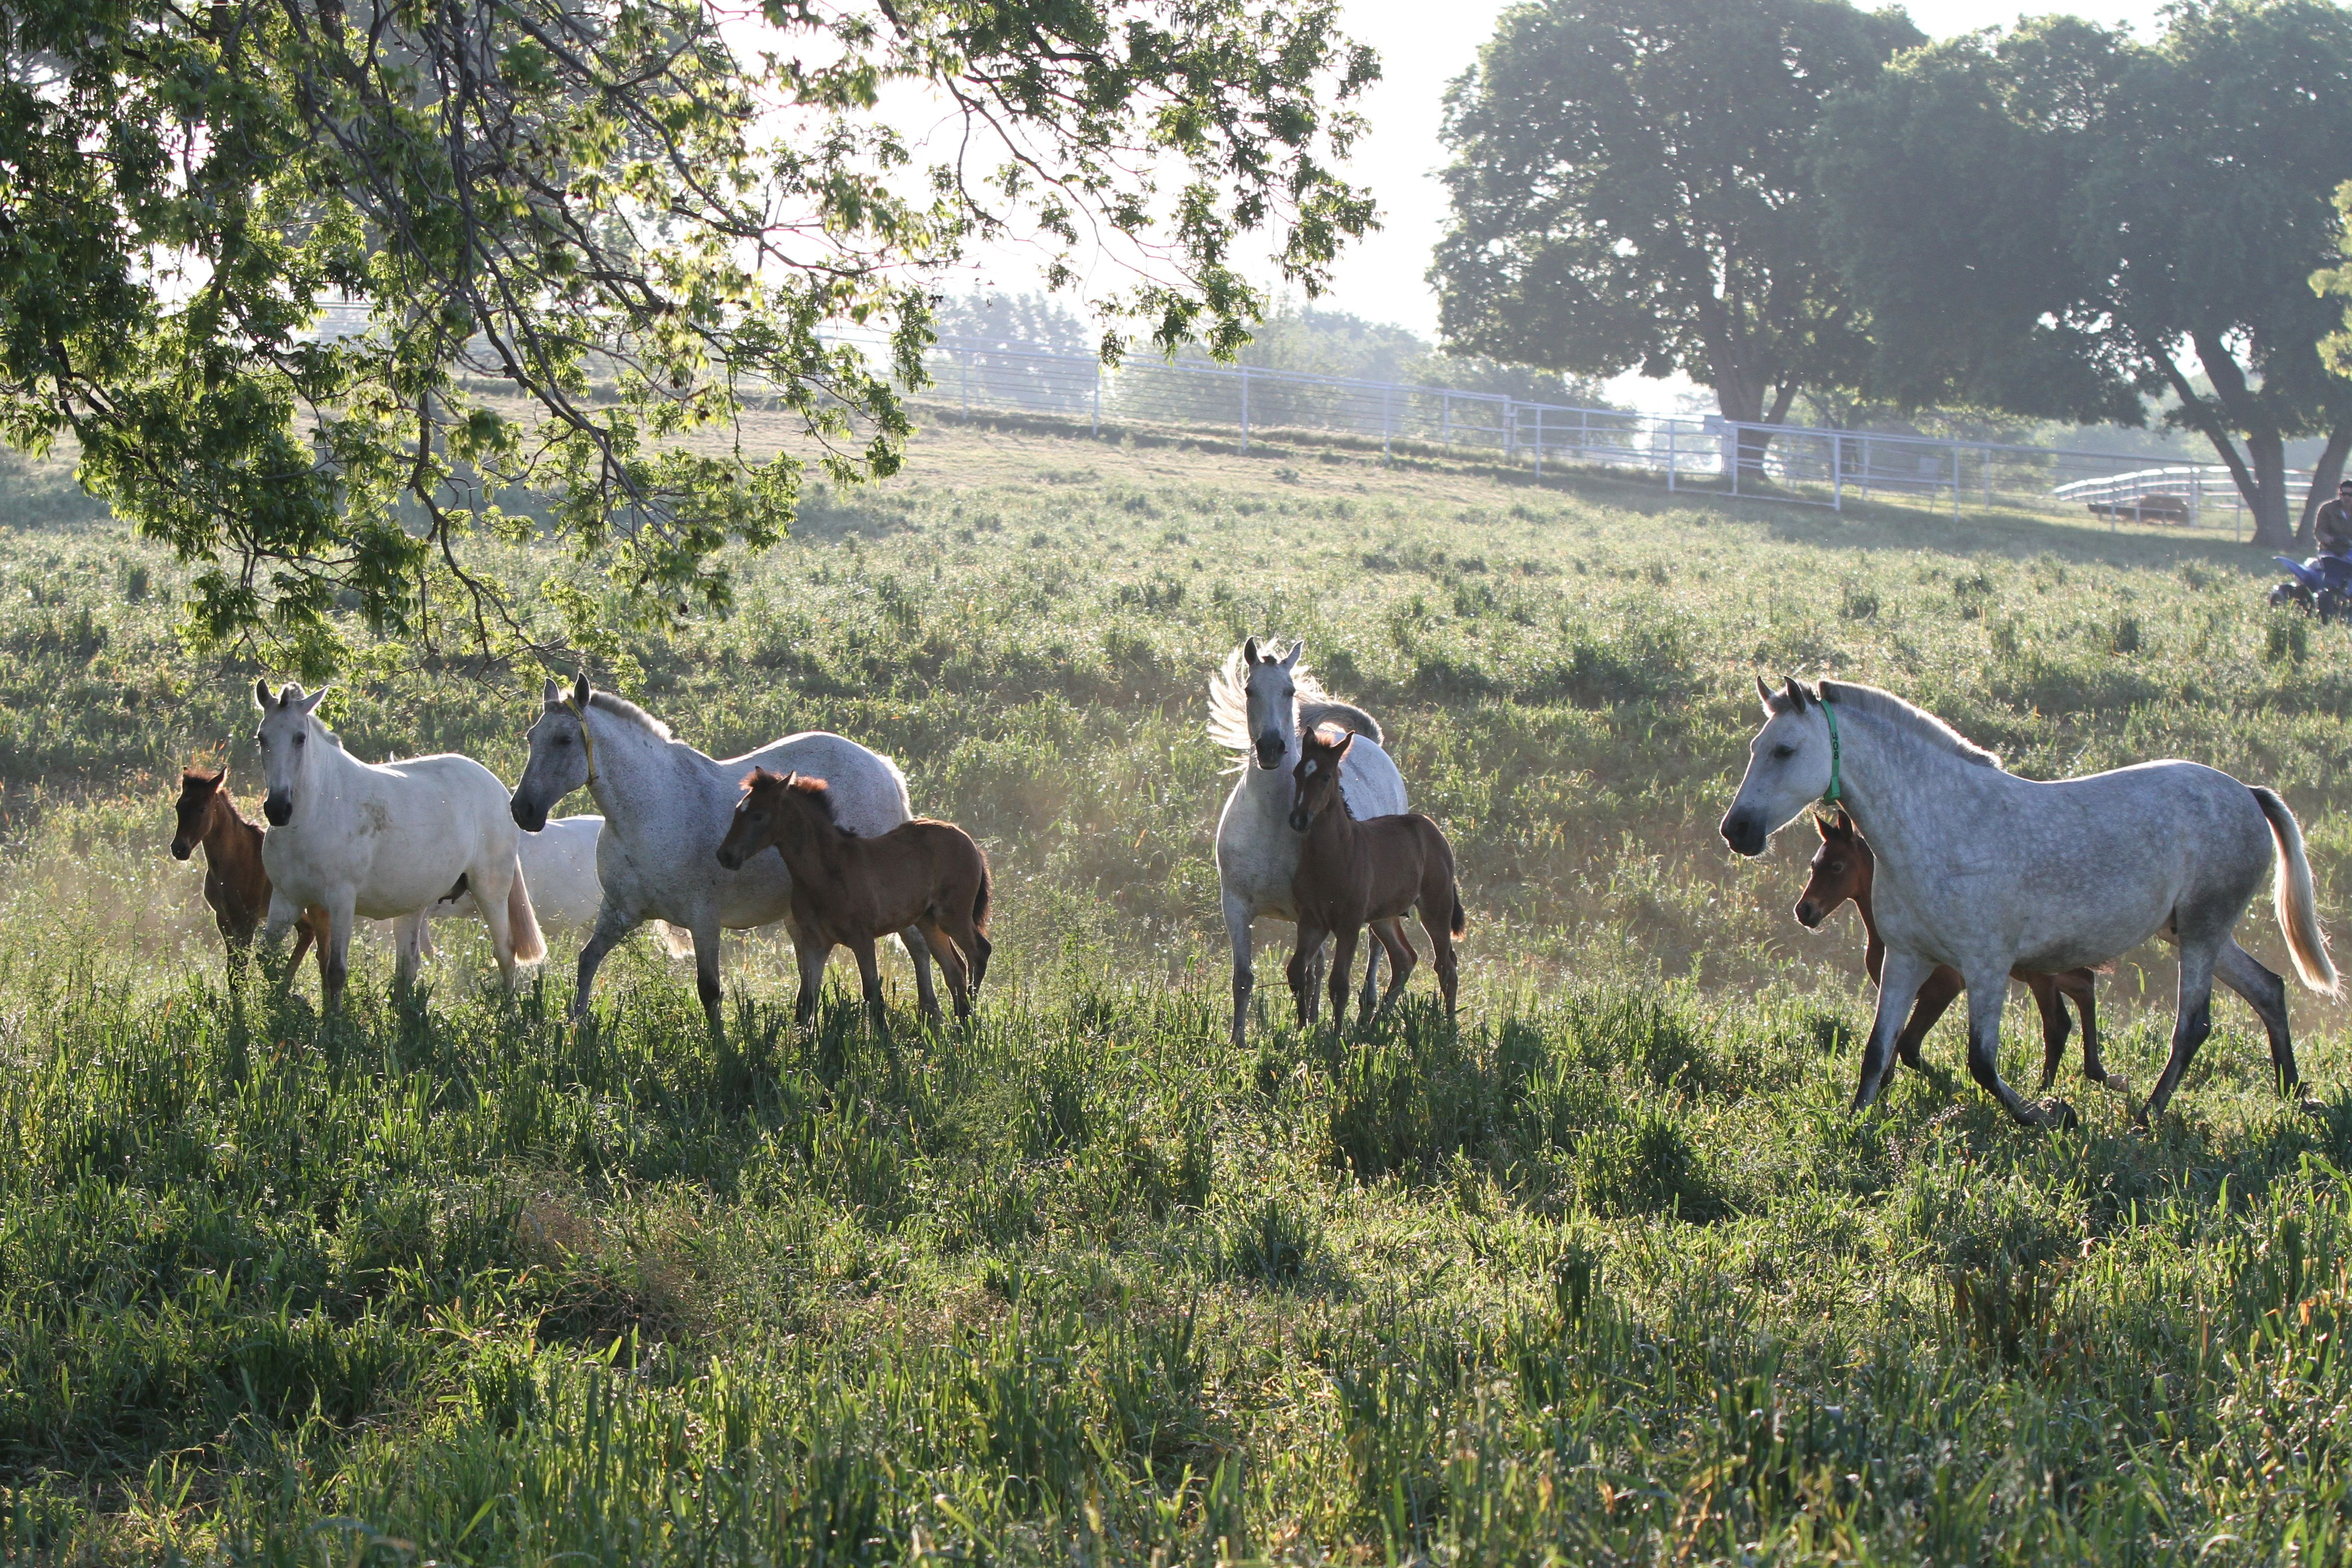 Misty-morning-for-Medieval-Times-horses-at-Chapel-Creek-Ranch.jpg (4708×3139)